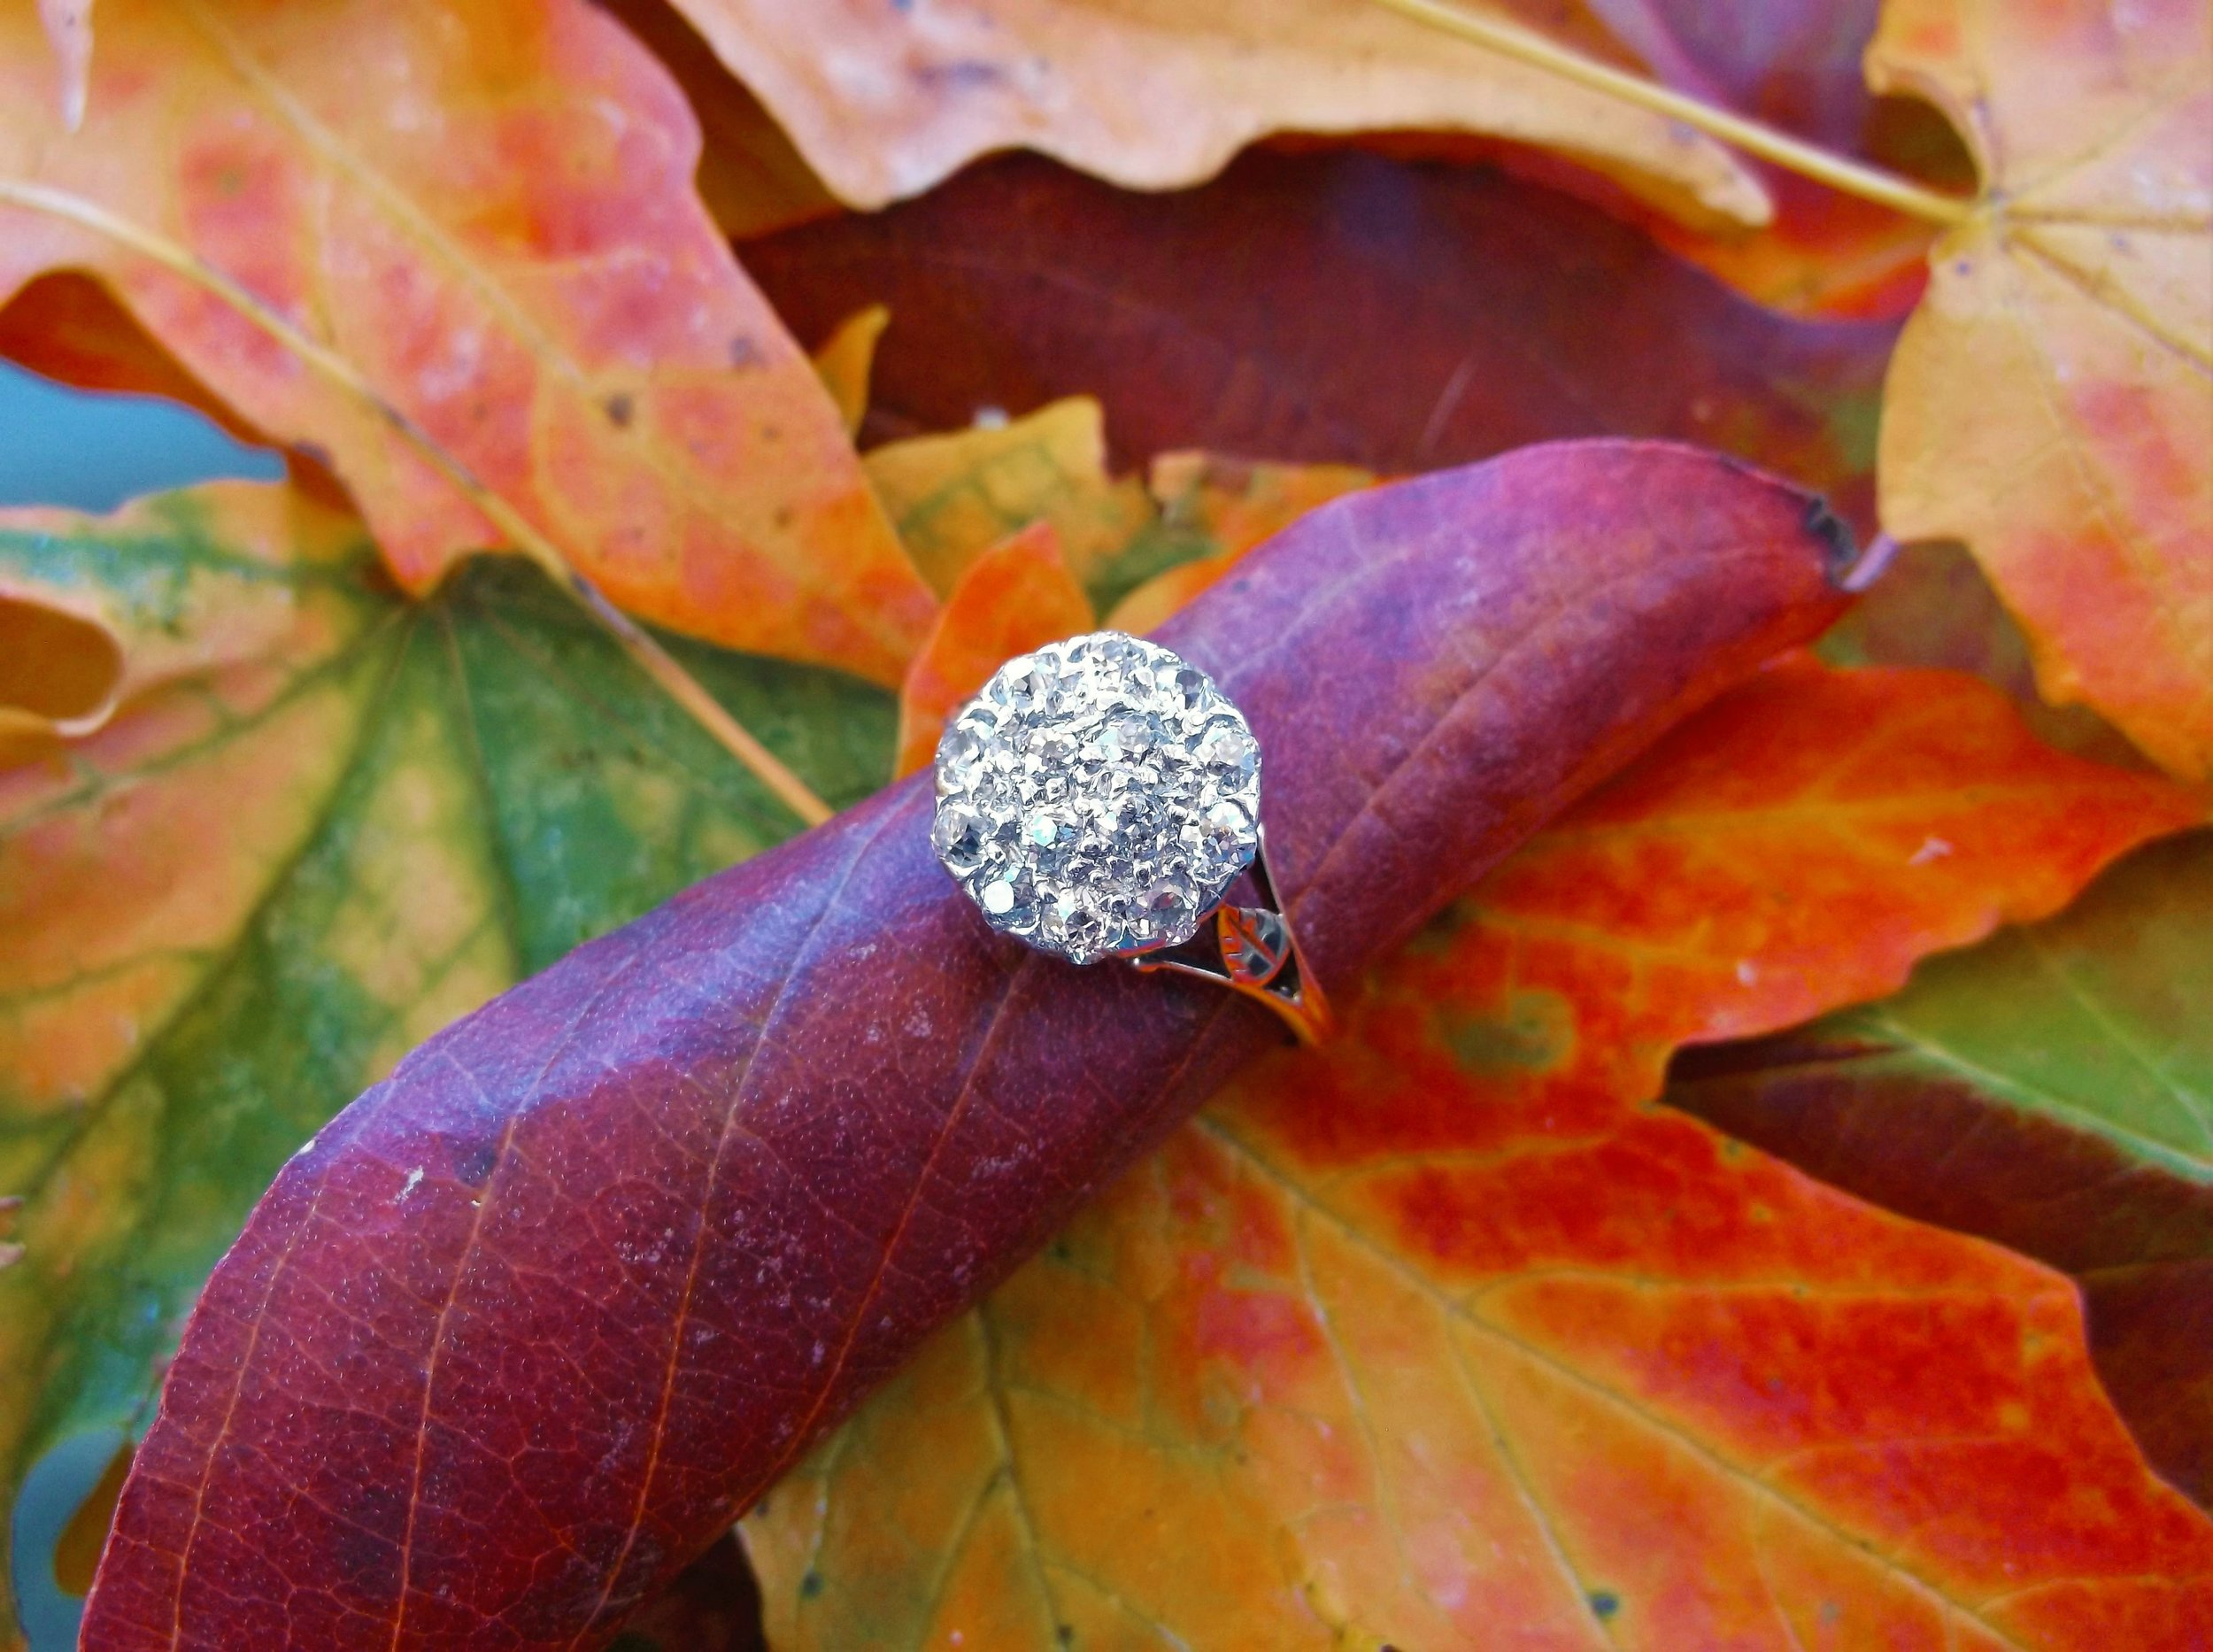 SOLD - This petite Edwardian era stunner packs a big punch! The ring is set with 1.00 carat total weight of Old Mine cut diamonds in a delicate platinum topped gold mounting.